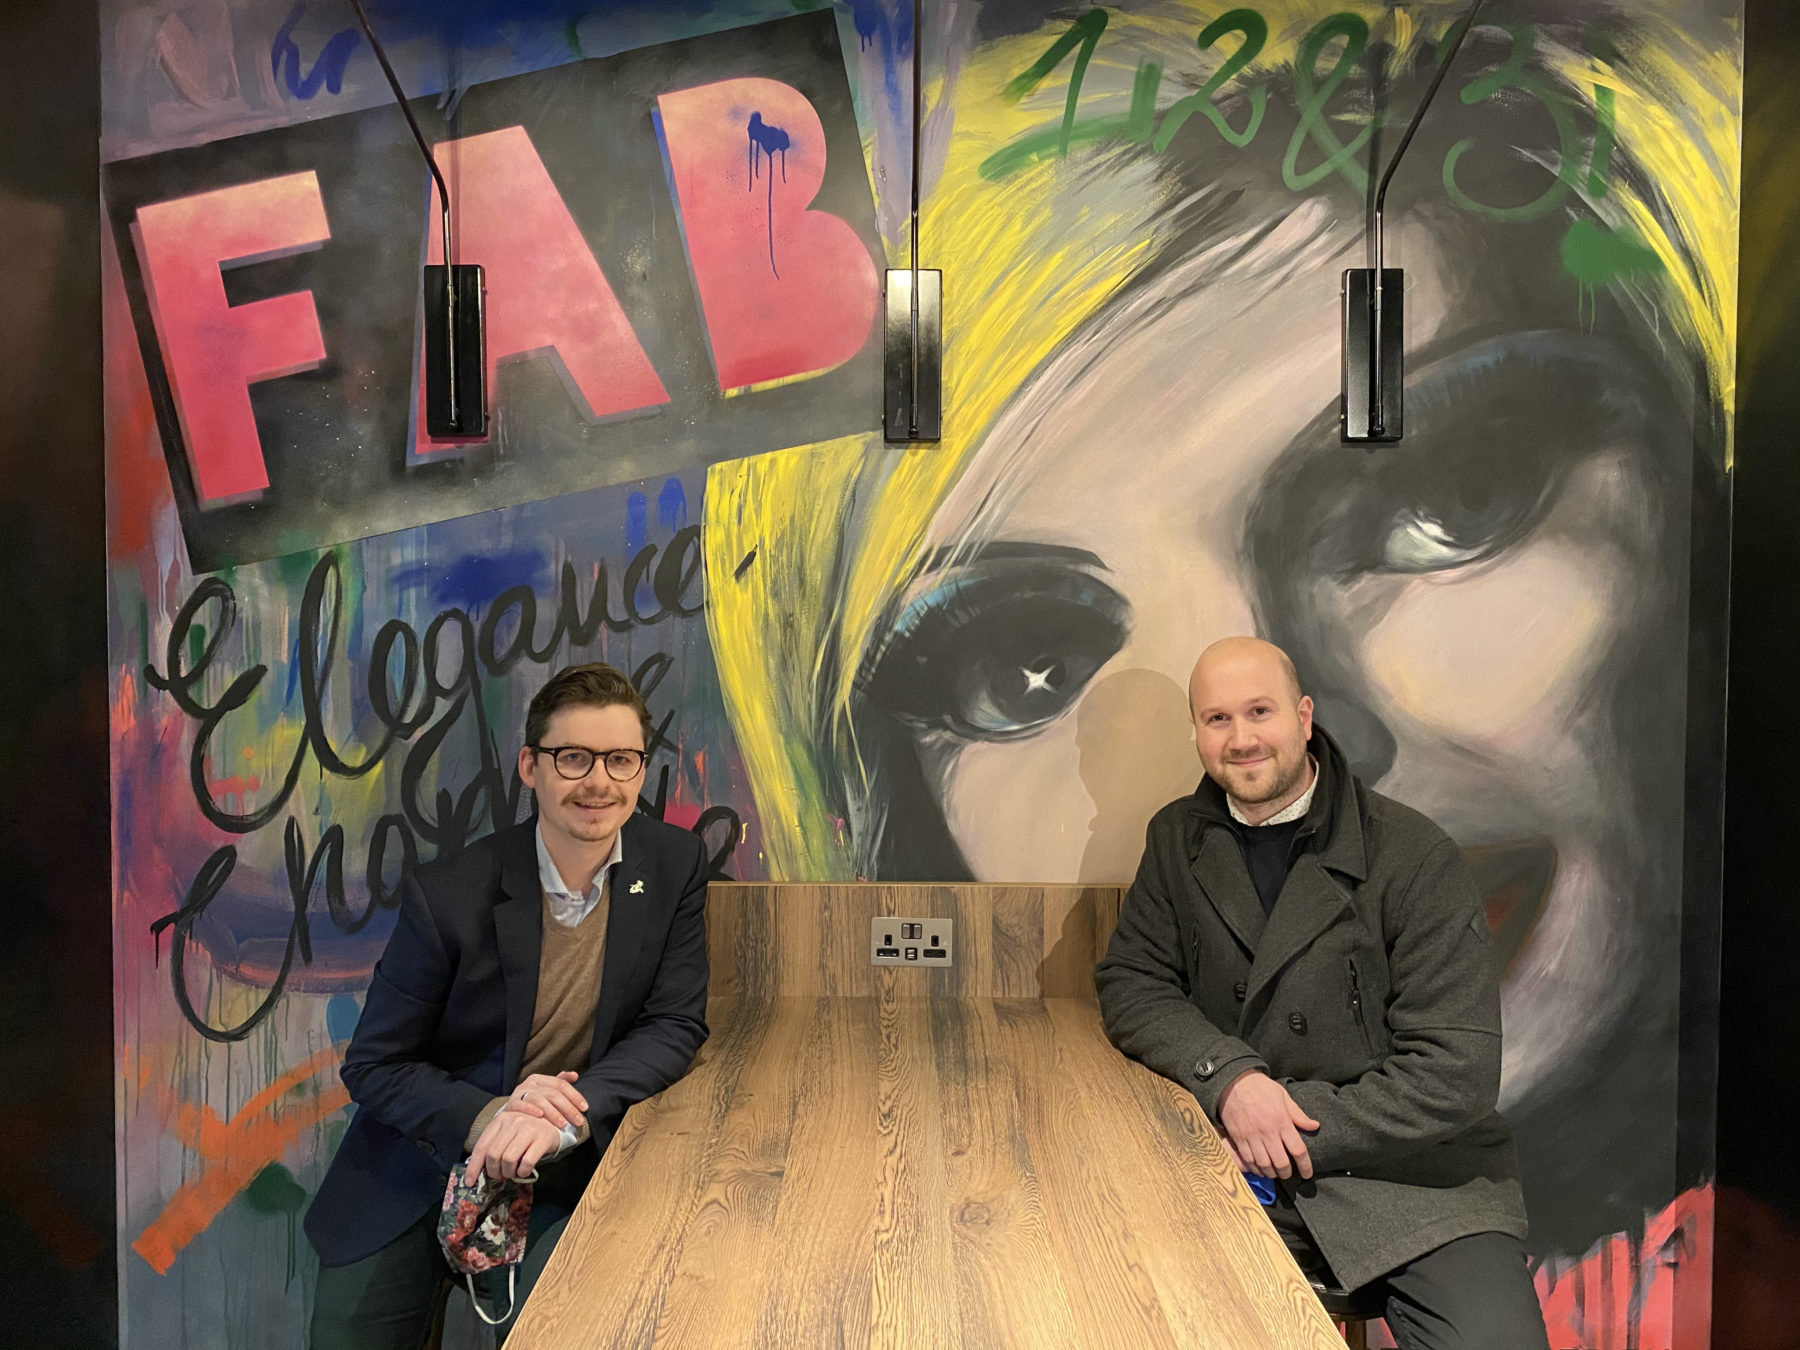 Moxy Slough general manager Philip Steiner with Anderson Entertainment MD Jamie Anderson